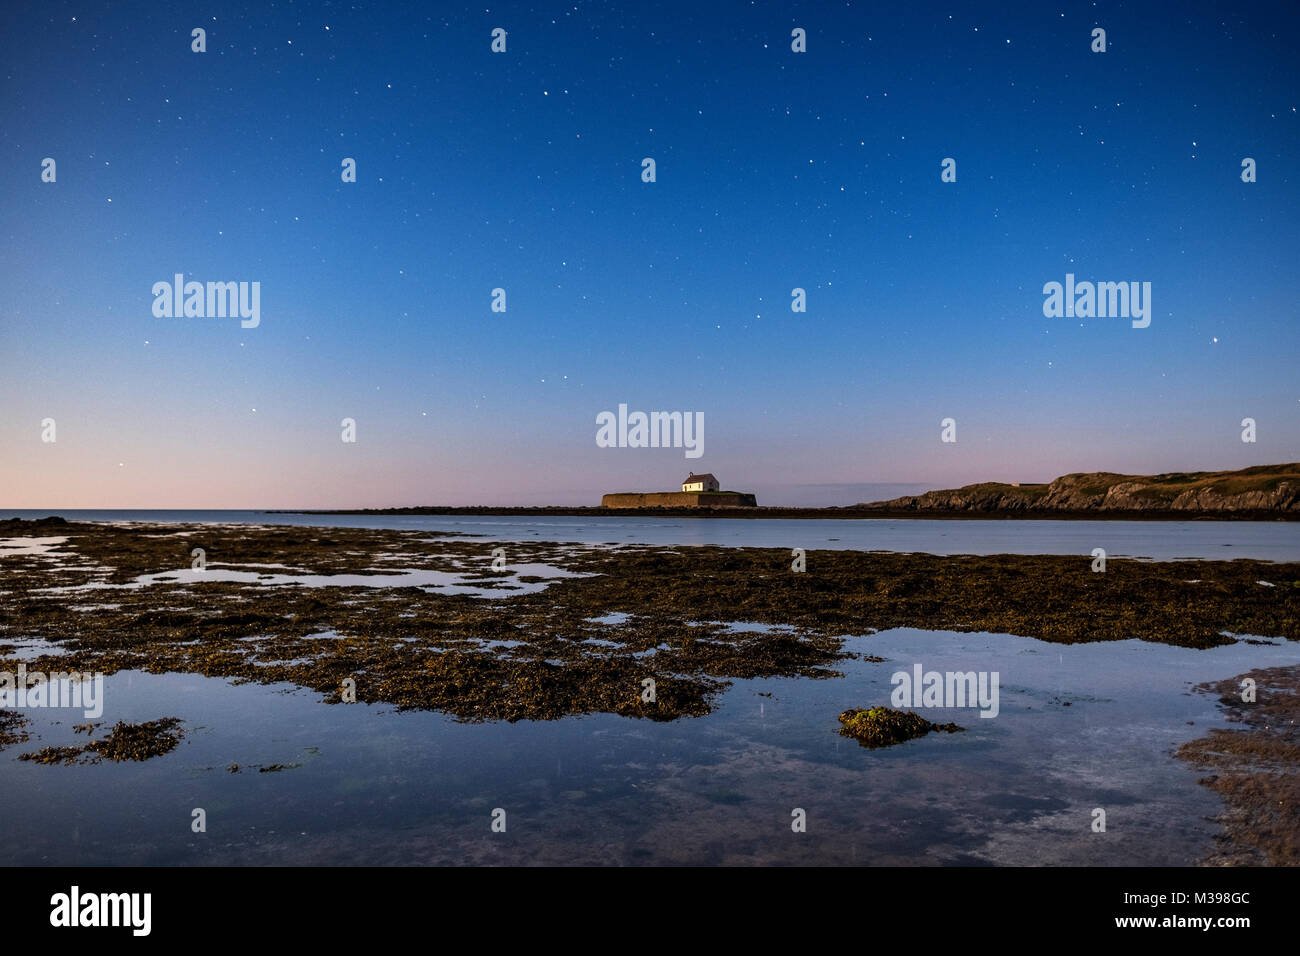 The night sky over St Cwyfan's Church, Aberffraw, Anglesey, North Wales, UK - Stock Image